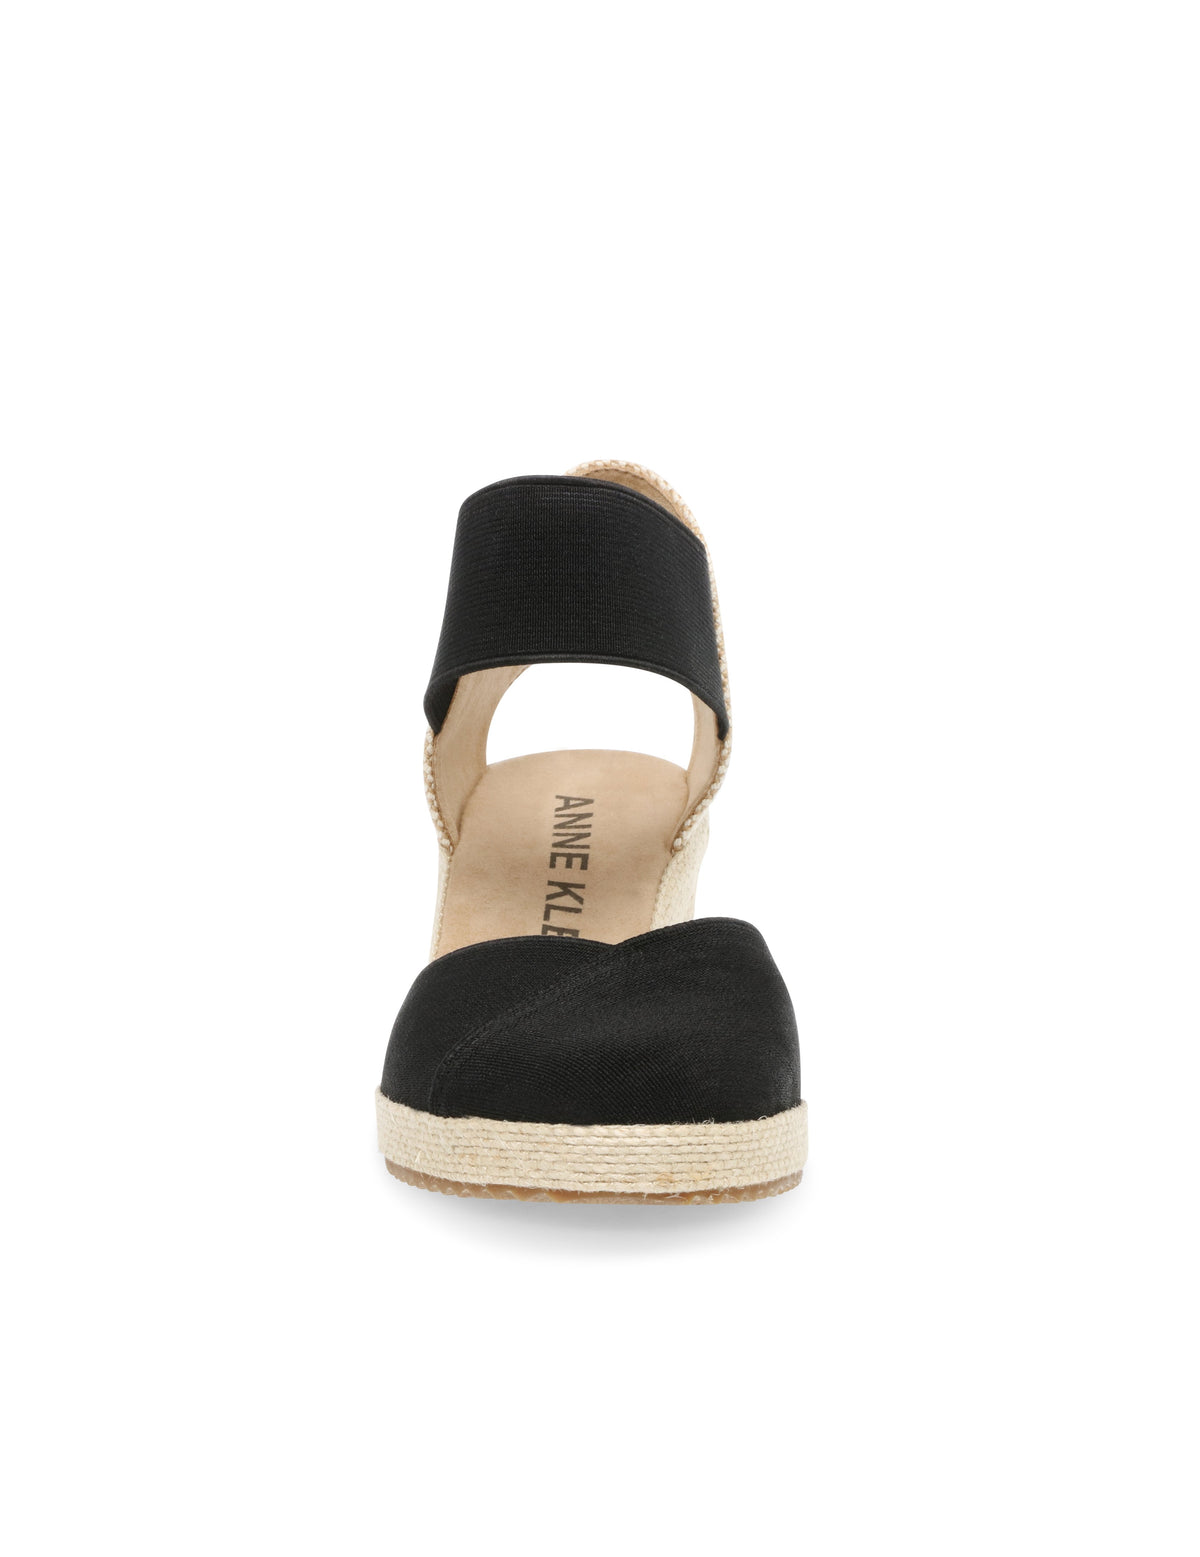 Anne Klein Zoey Round Toe Espadrille Wedge in Black